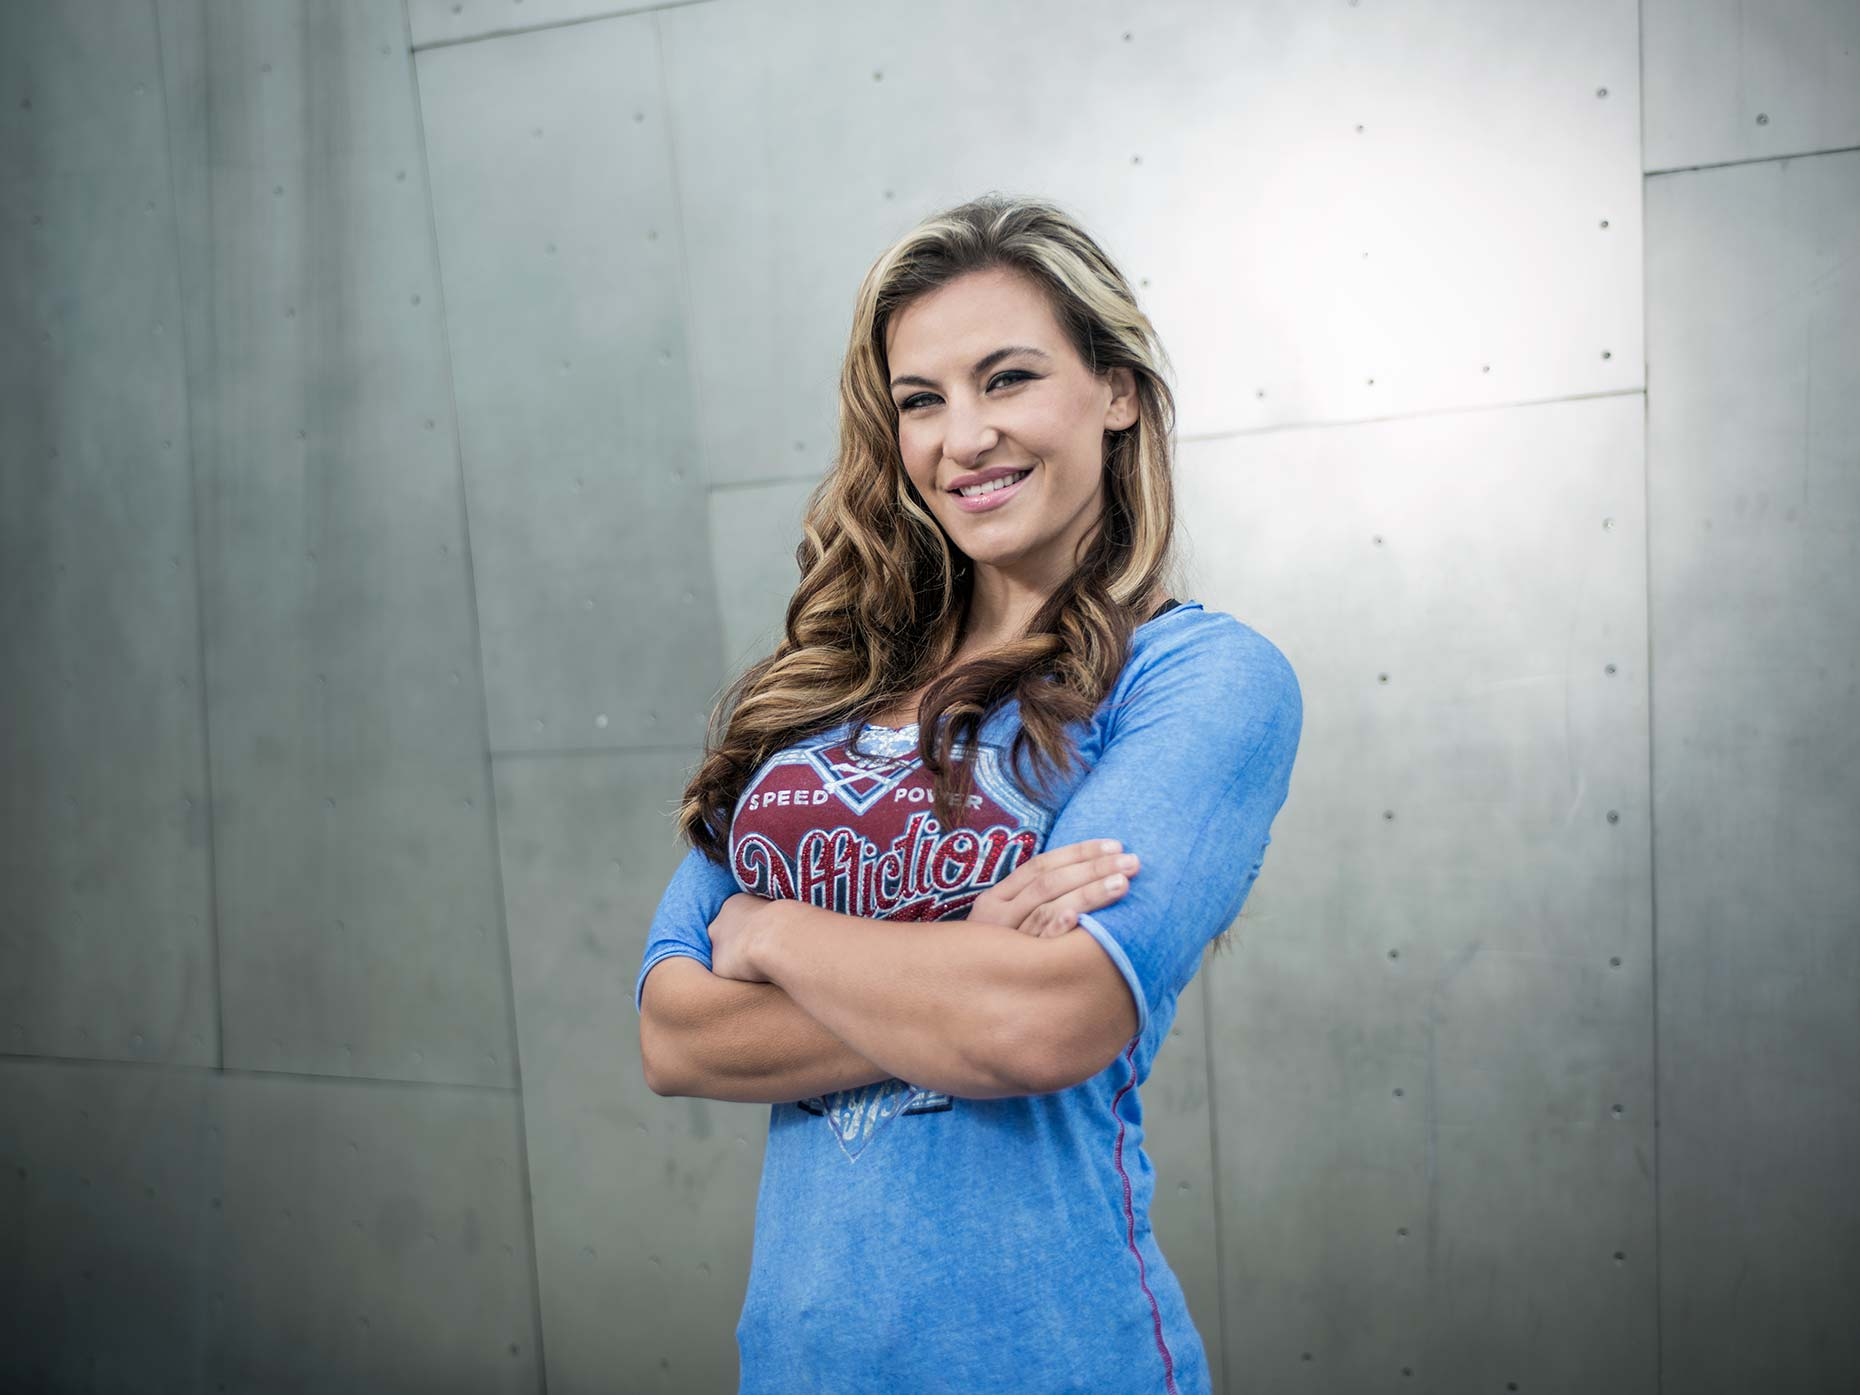 Ian-Coble-Portrait-Location-Miesha-Tate-UFC-Magazine